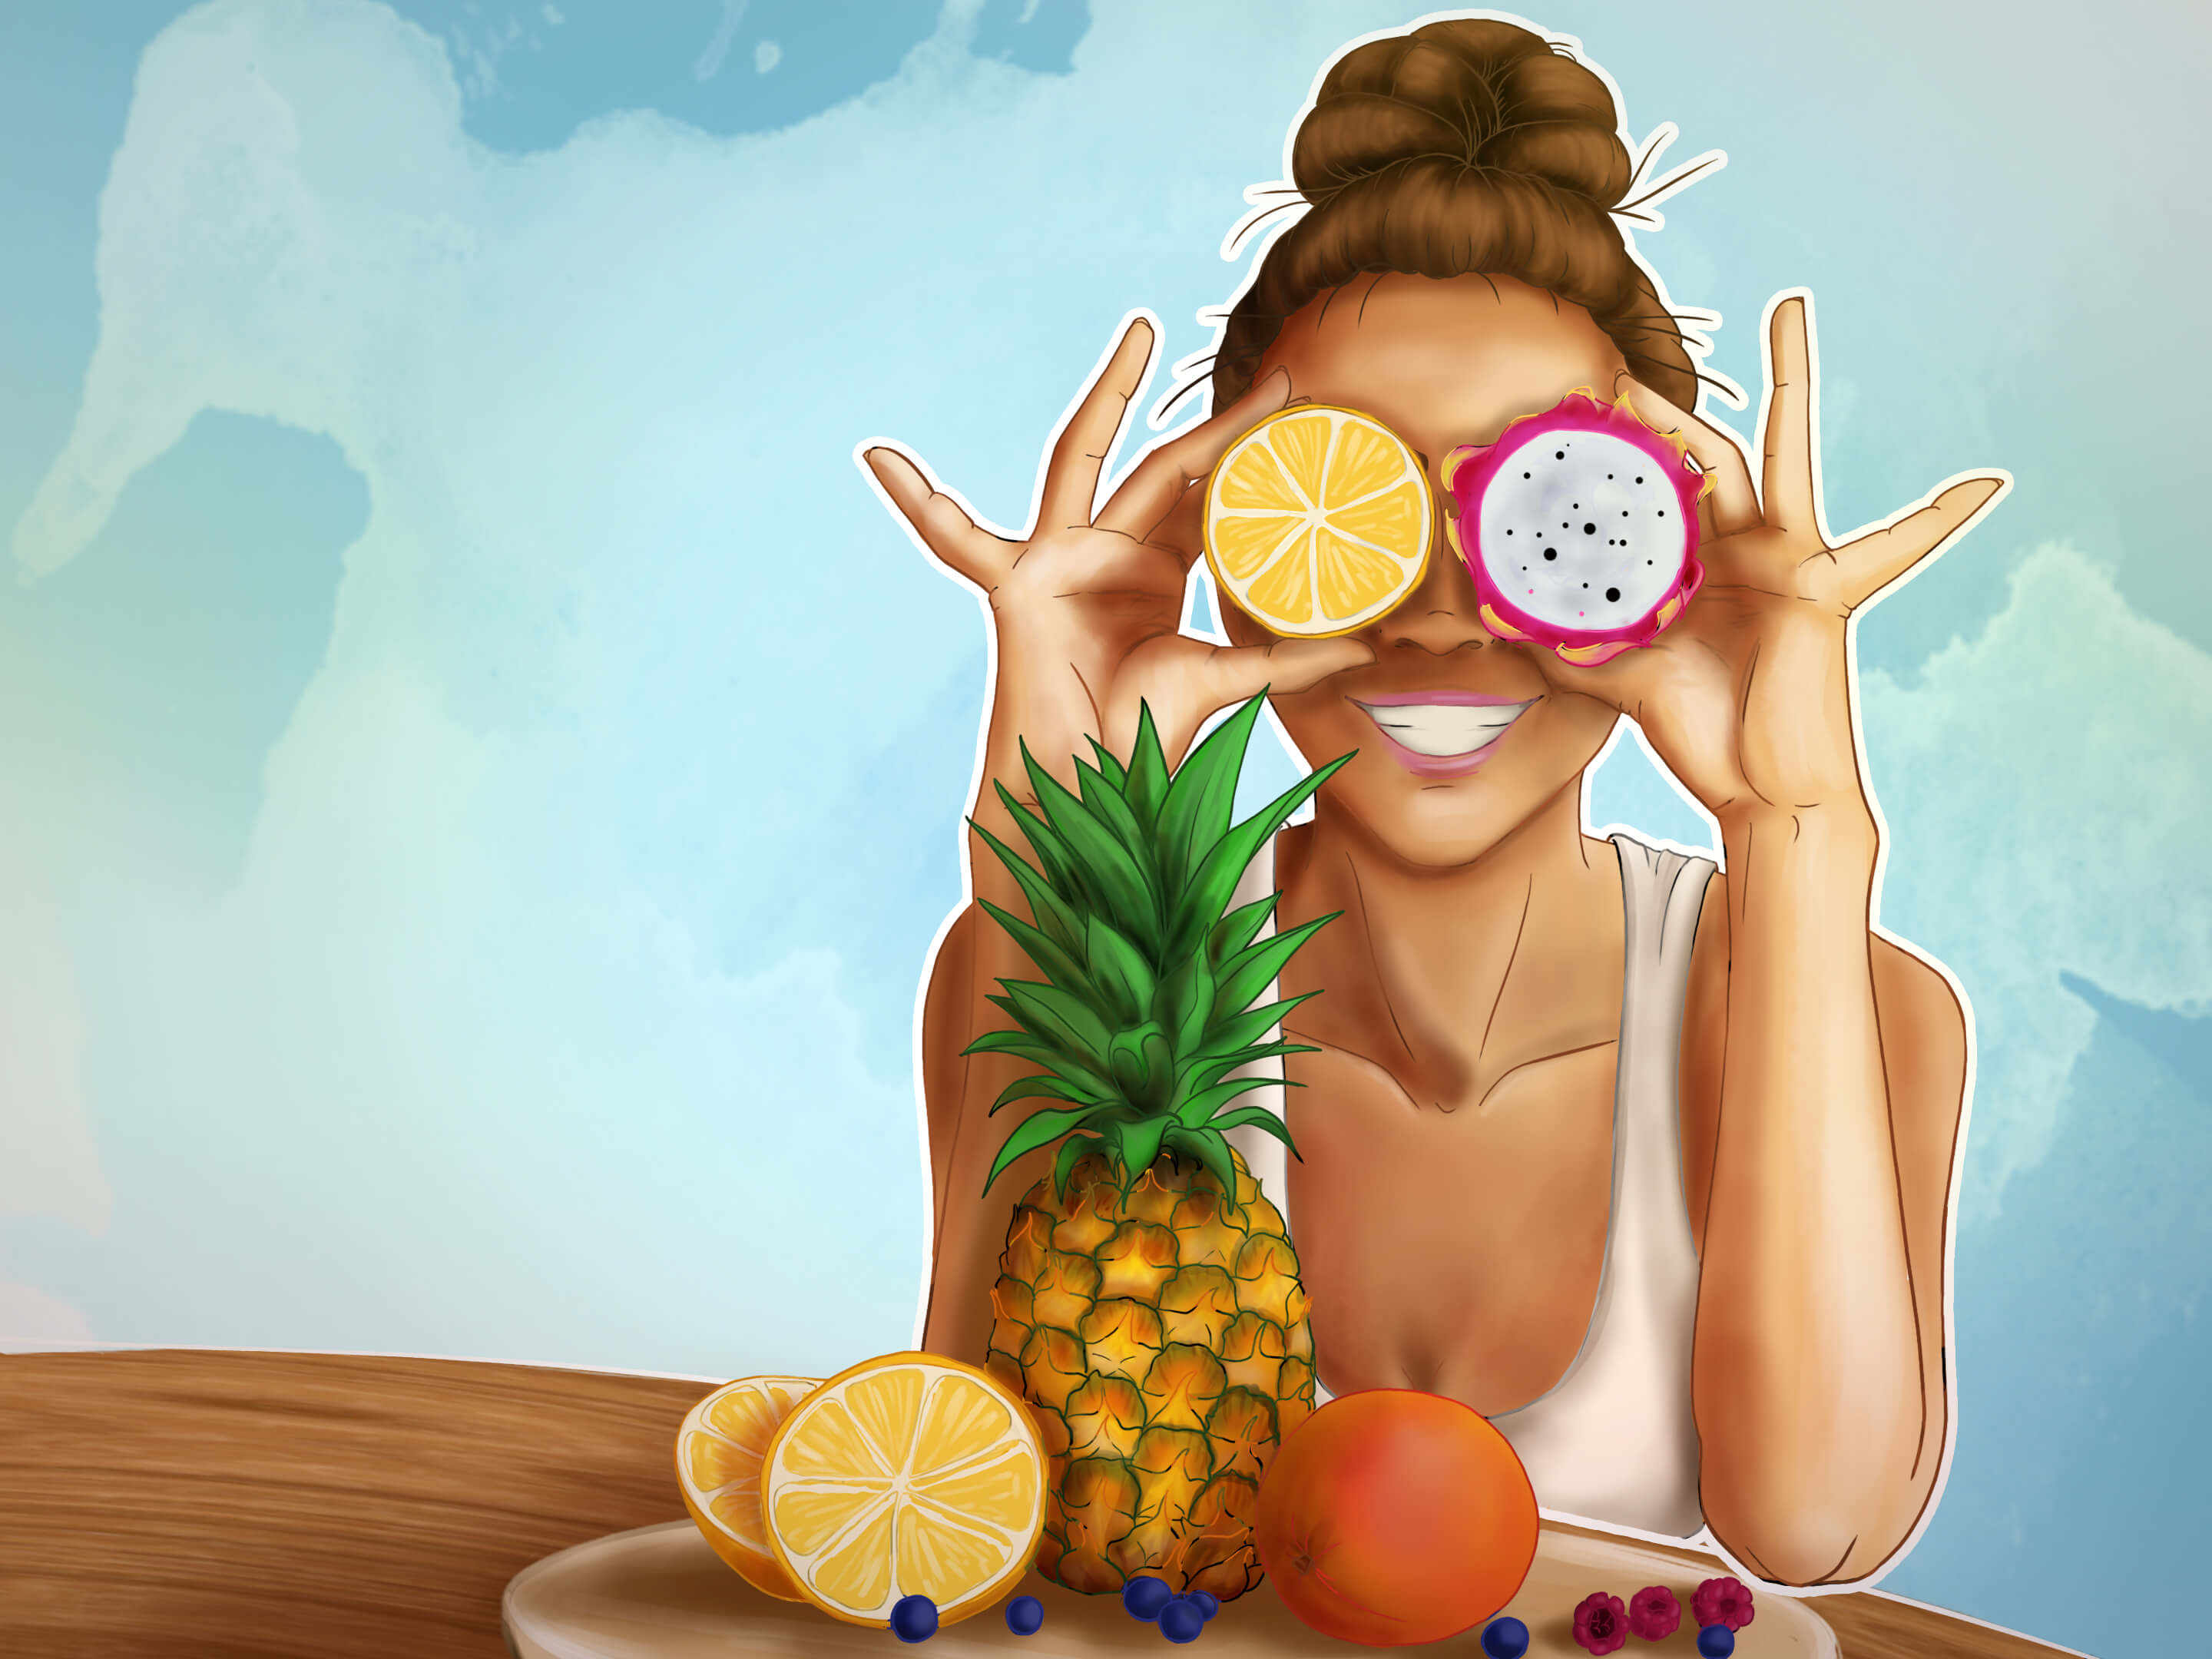 Illustration of a girl with 2 fruits replacing her eyes and many fruits on her plate